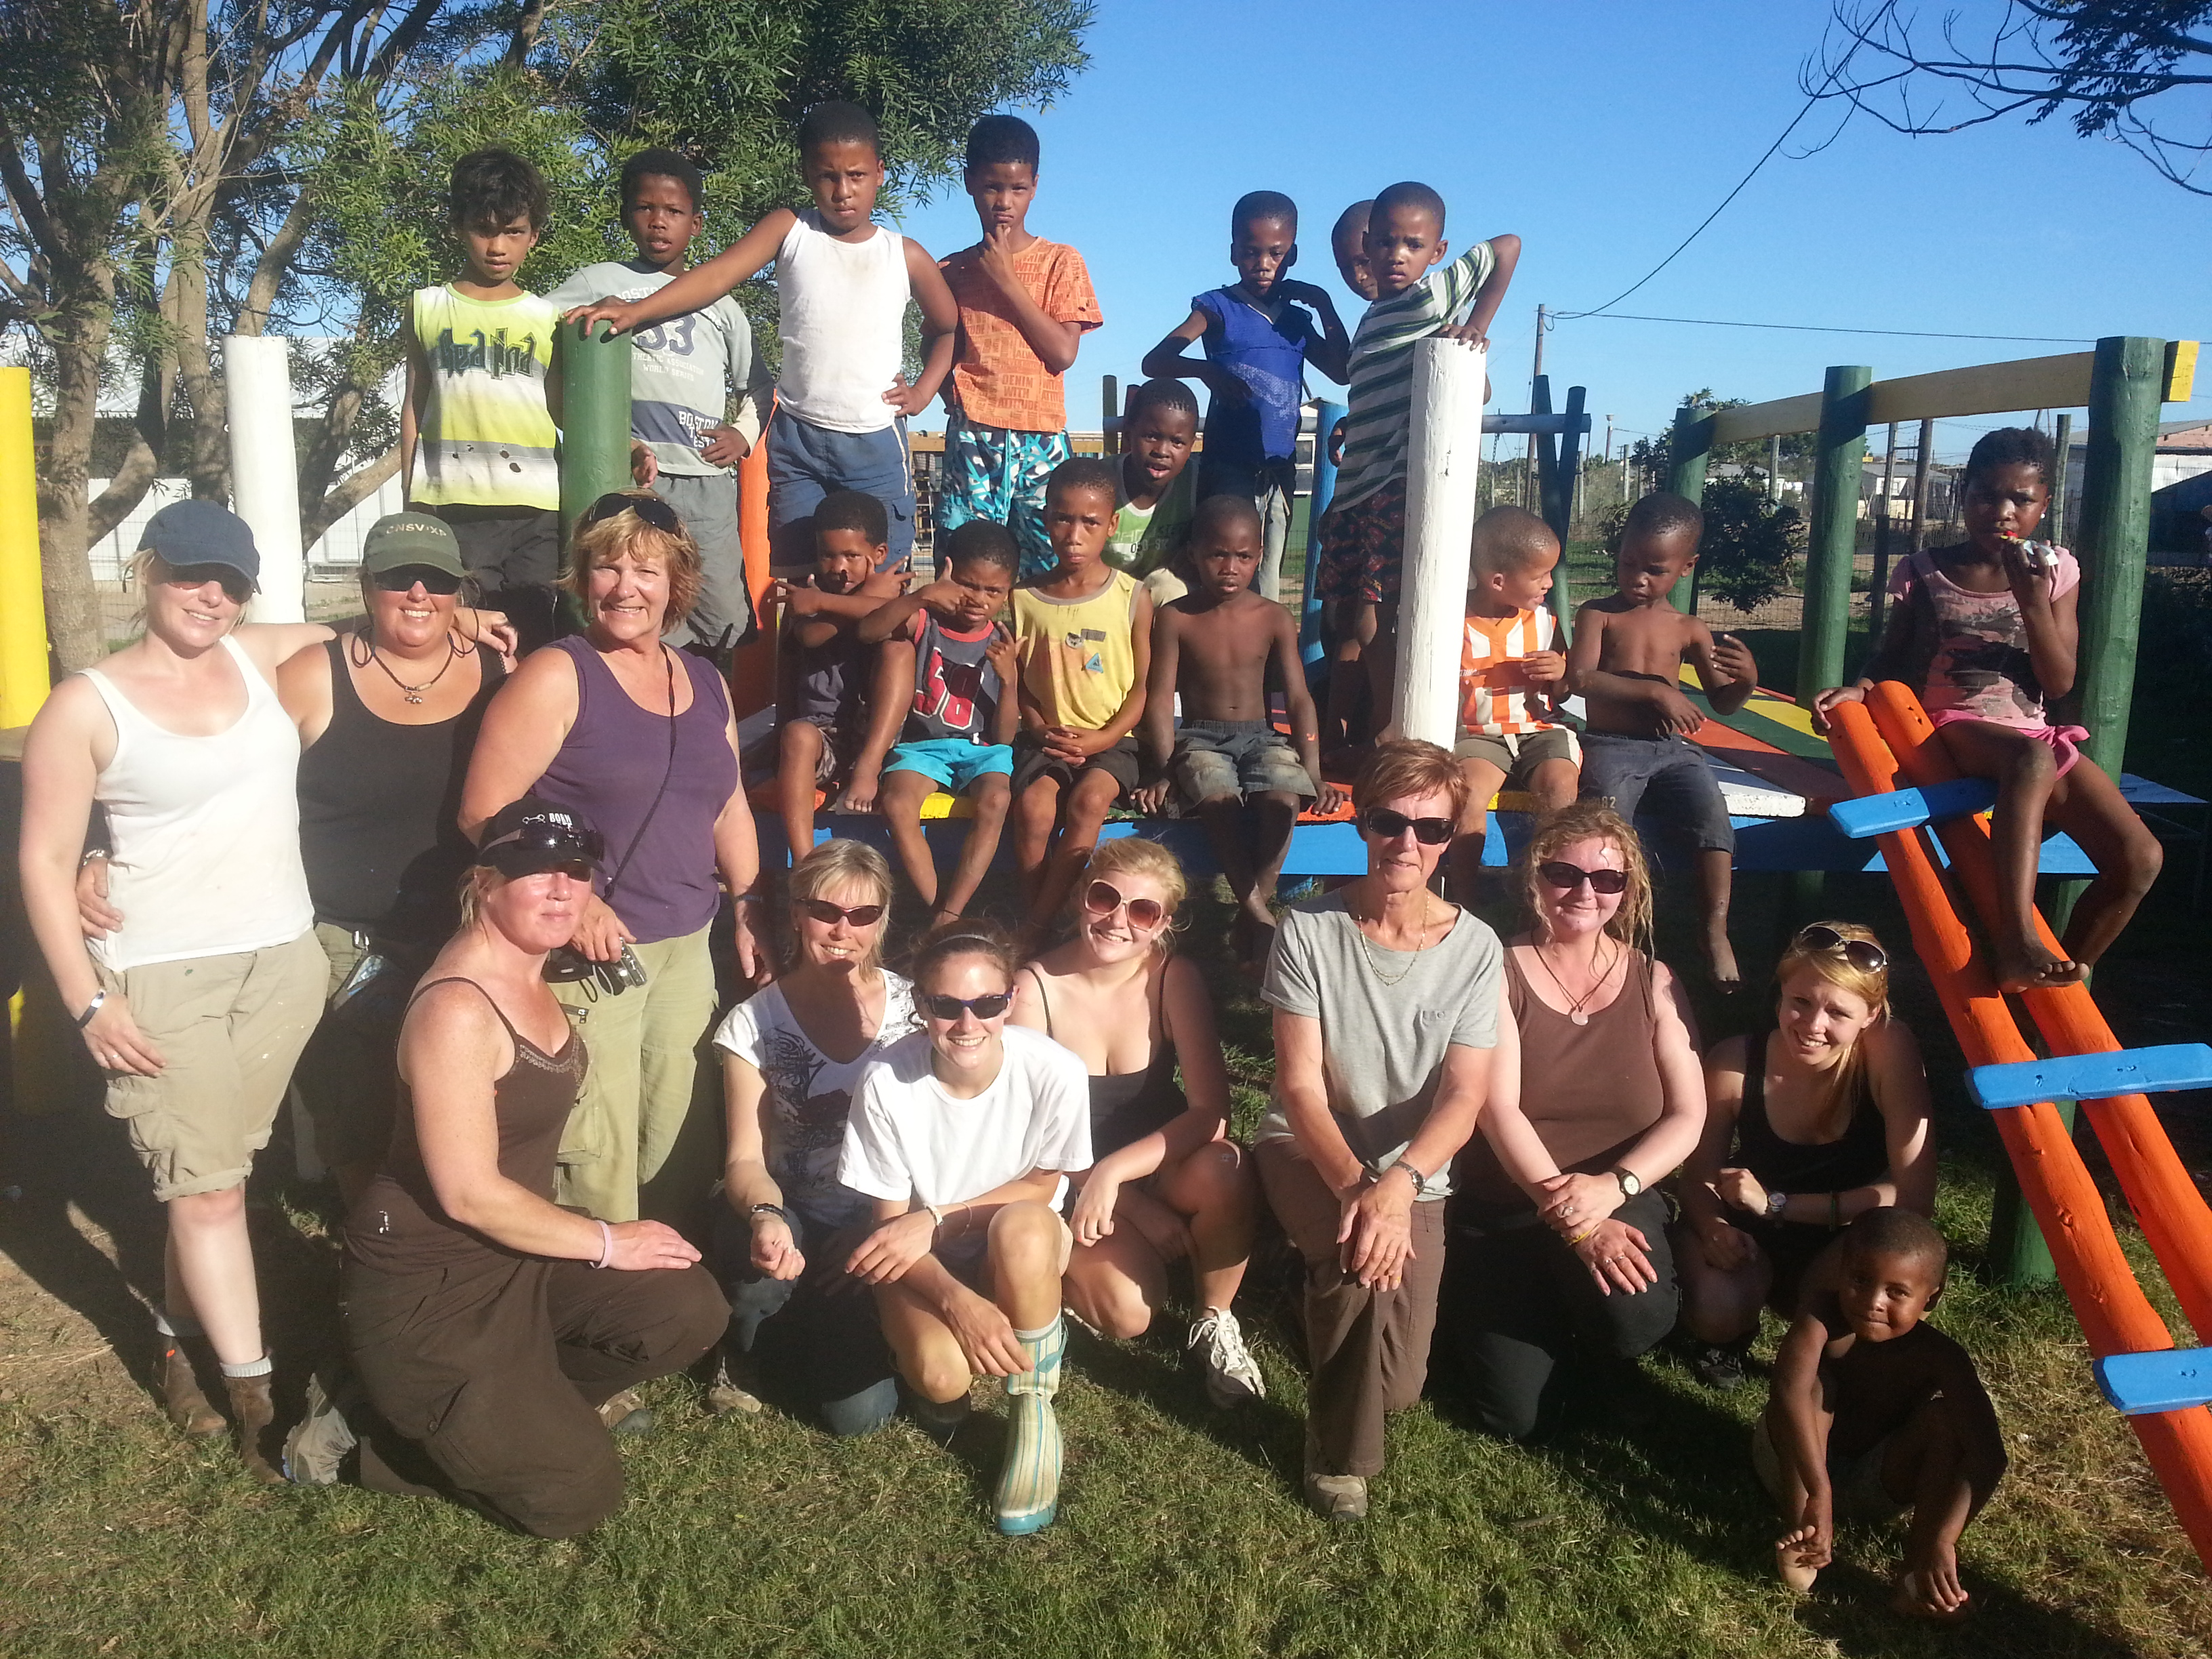 volunteers pose with members of the local community after building a jungle gym